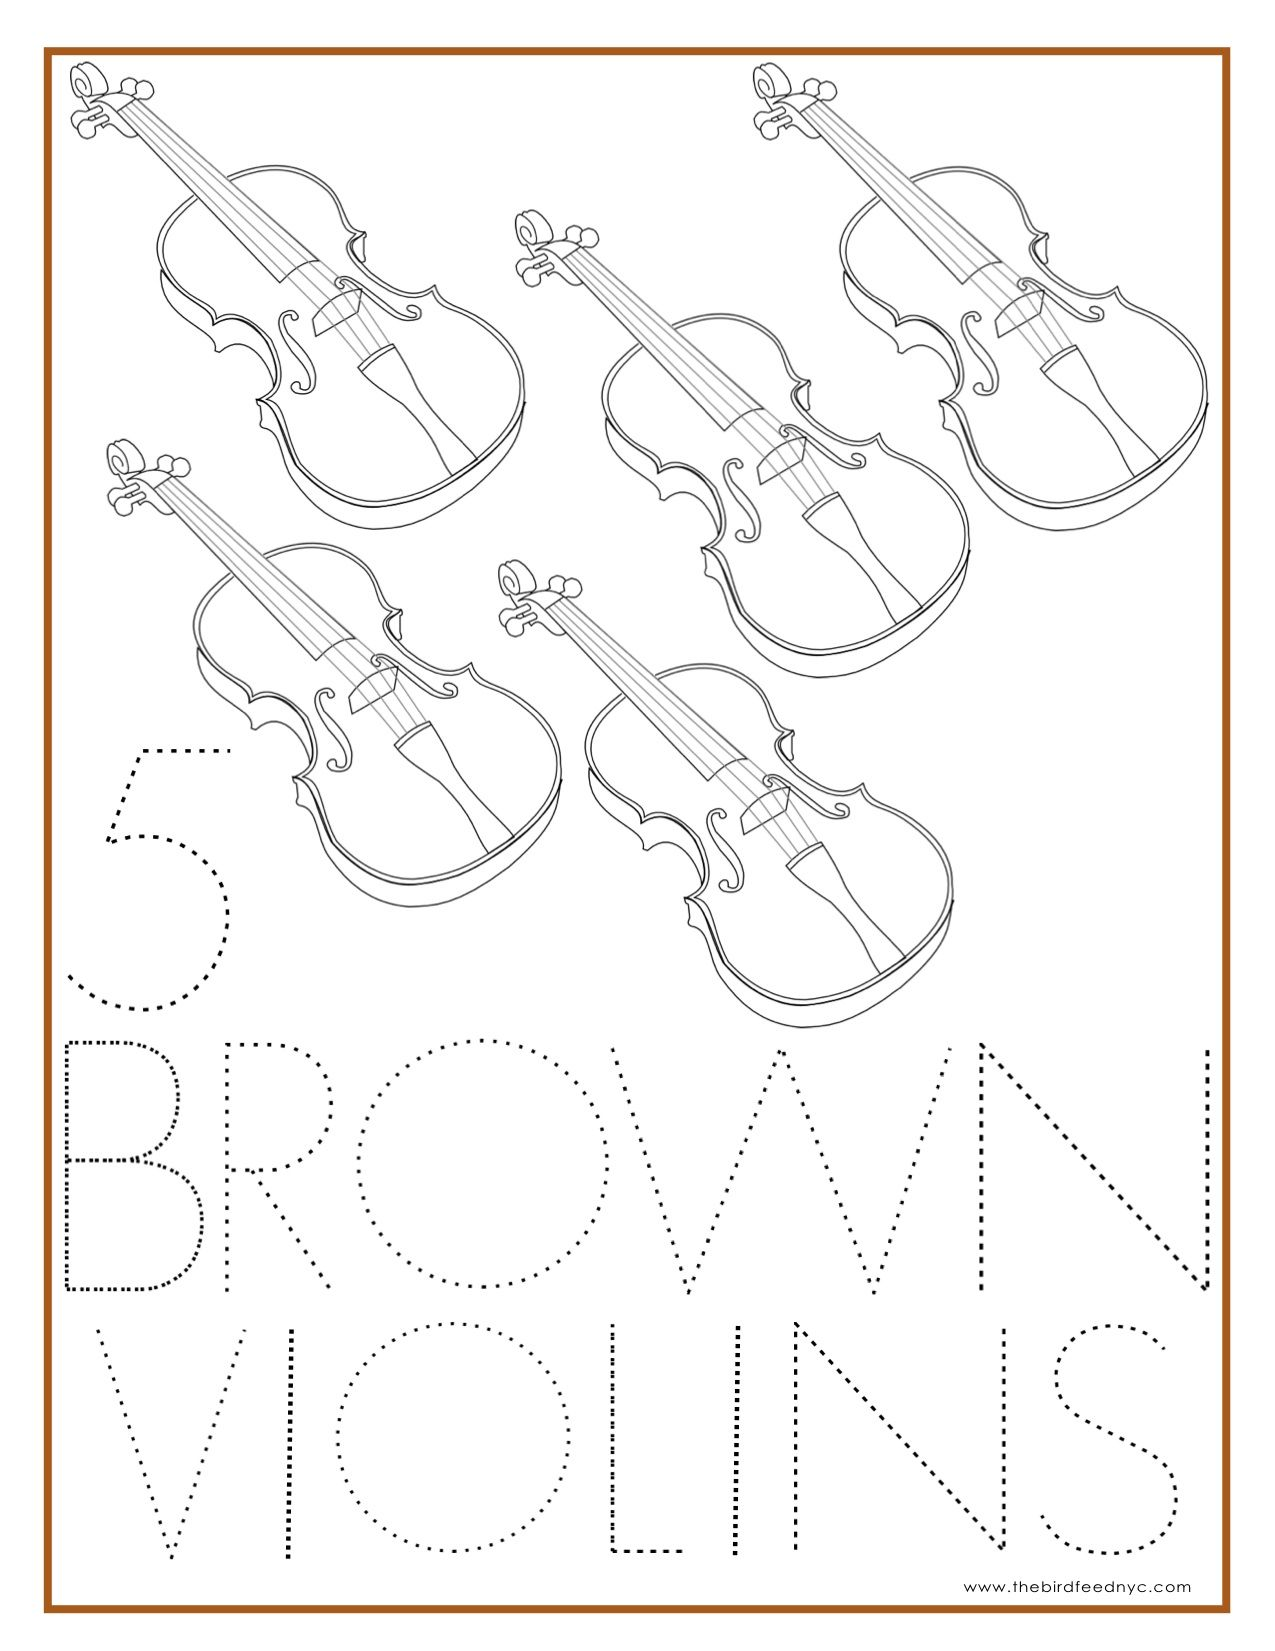 Number Coloring Sheet 5 Brown Violins Preschool